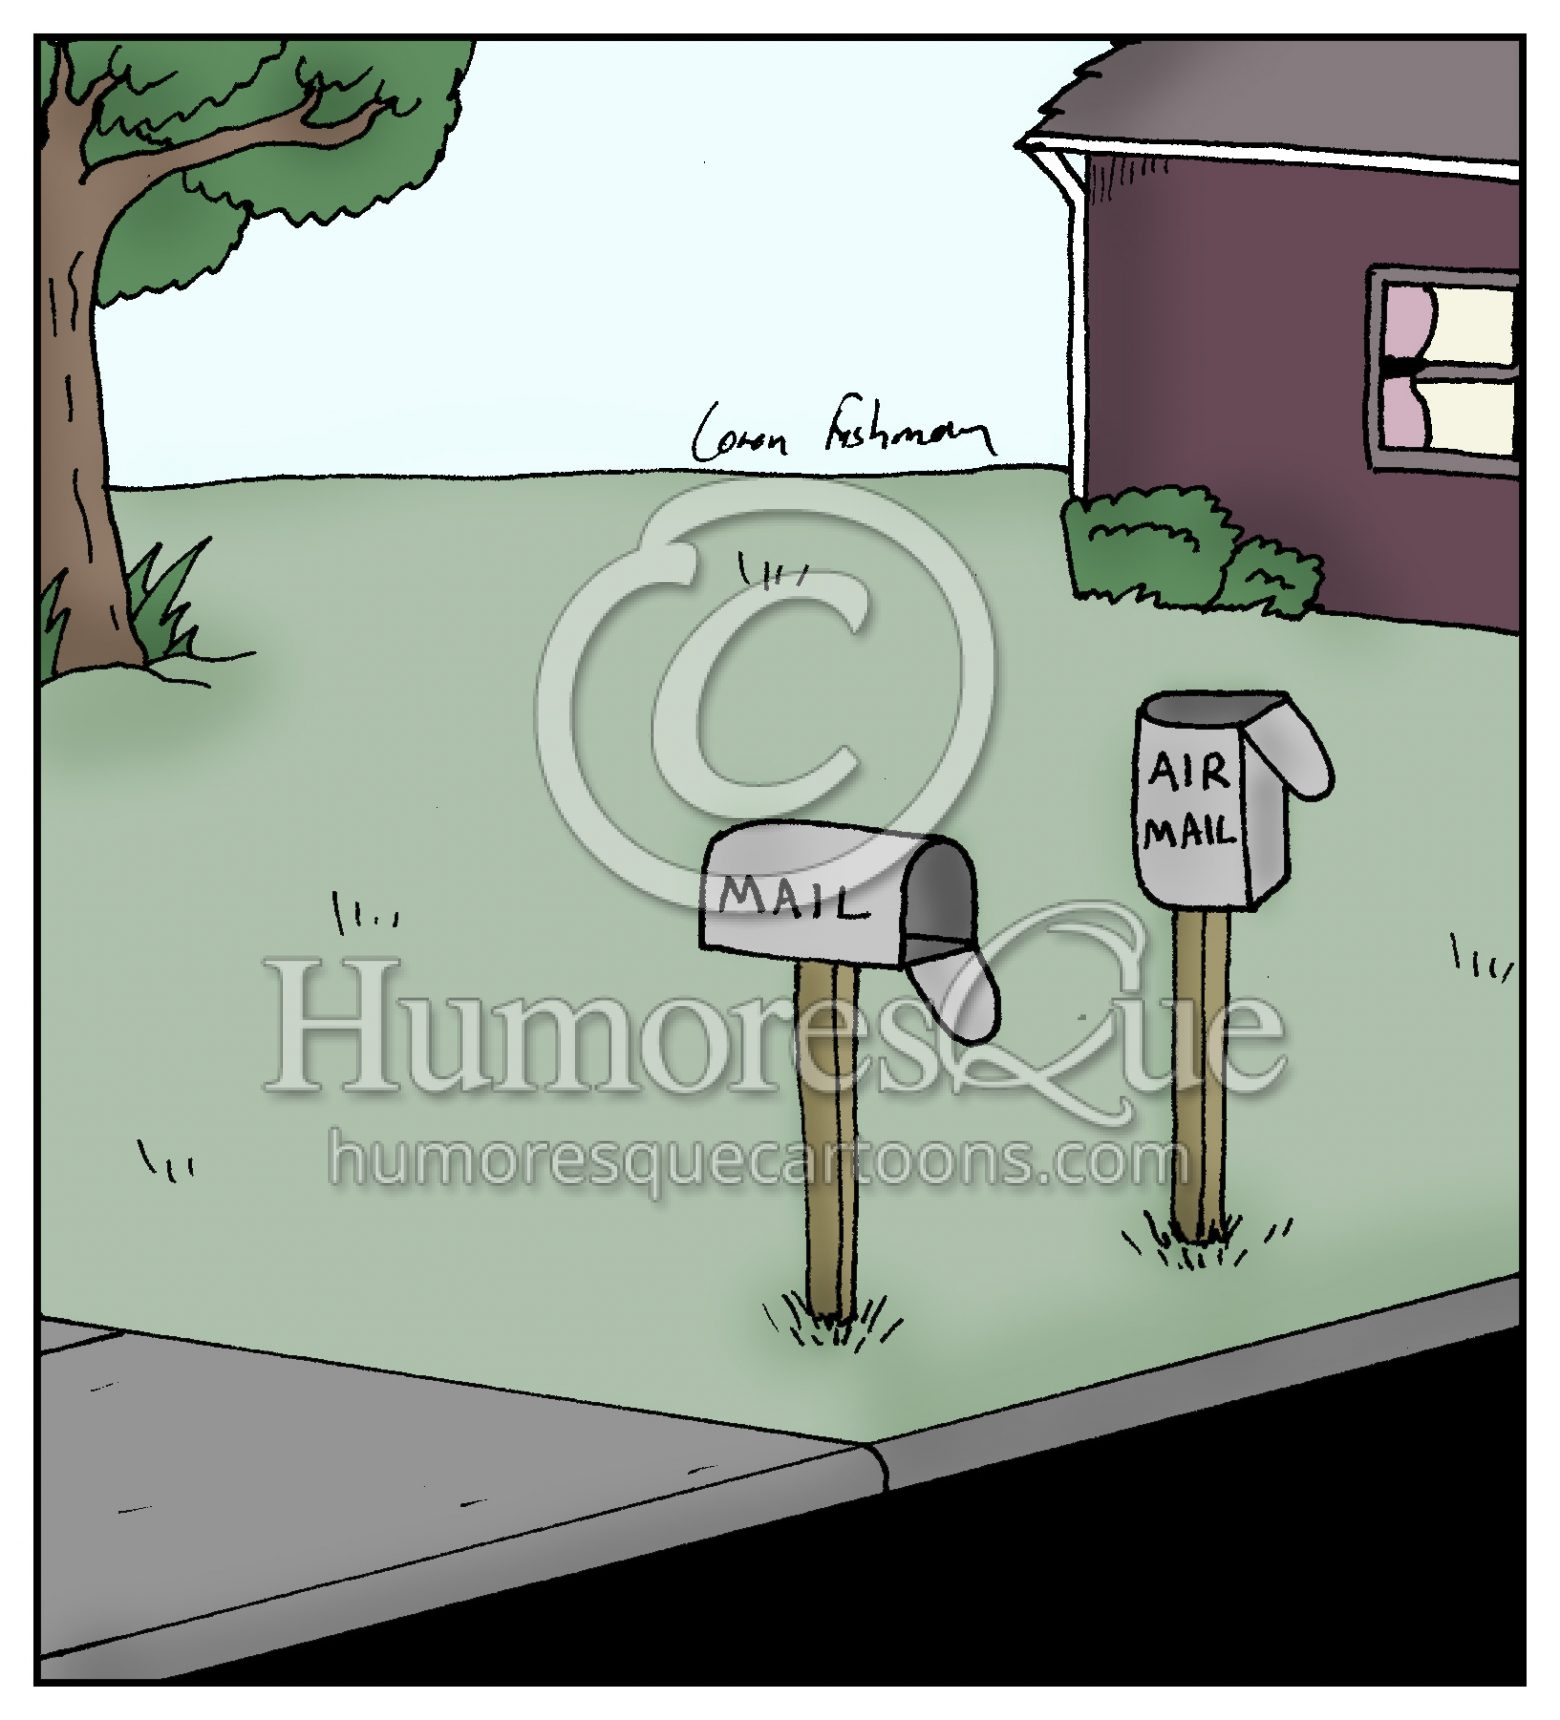 air mail box postal delivery cartoon